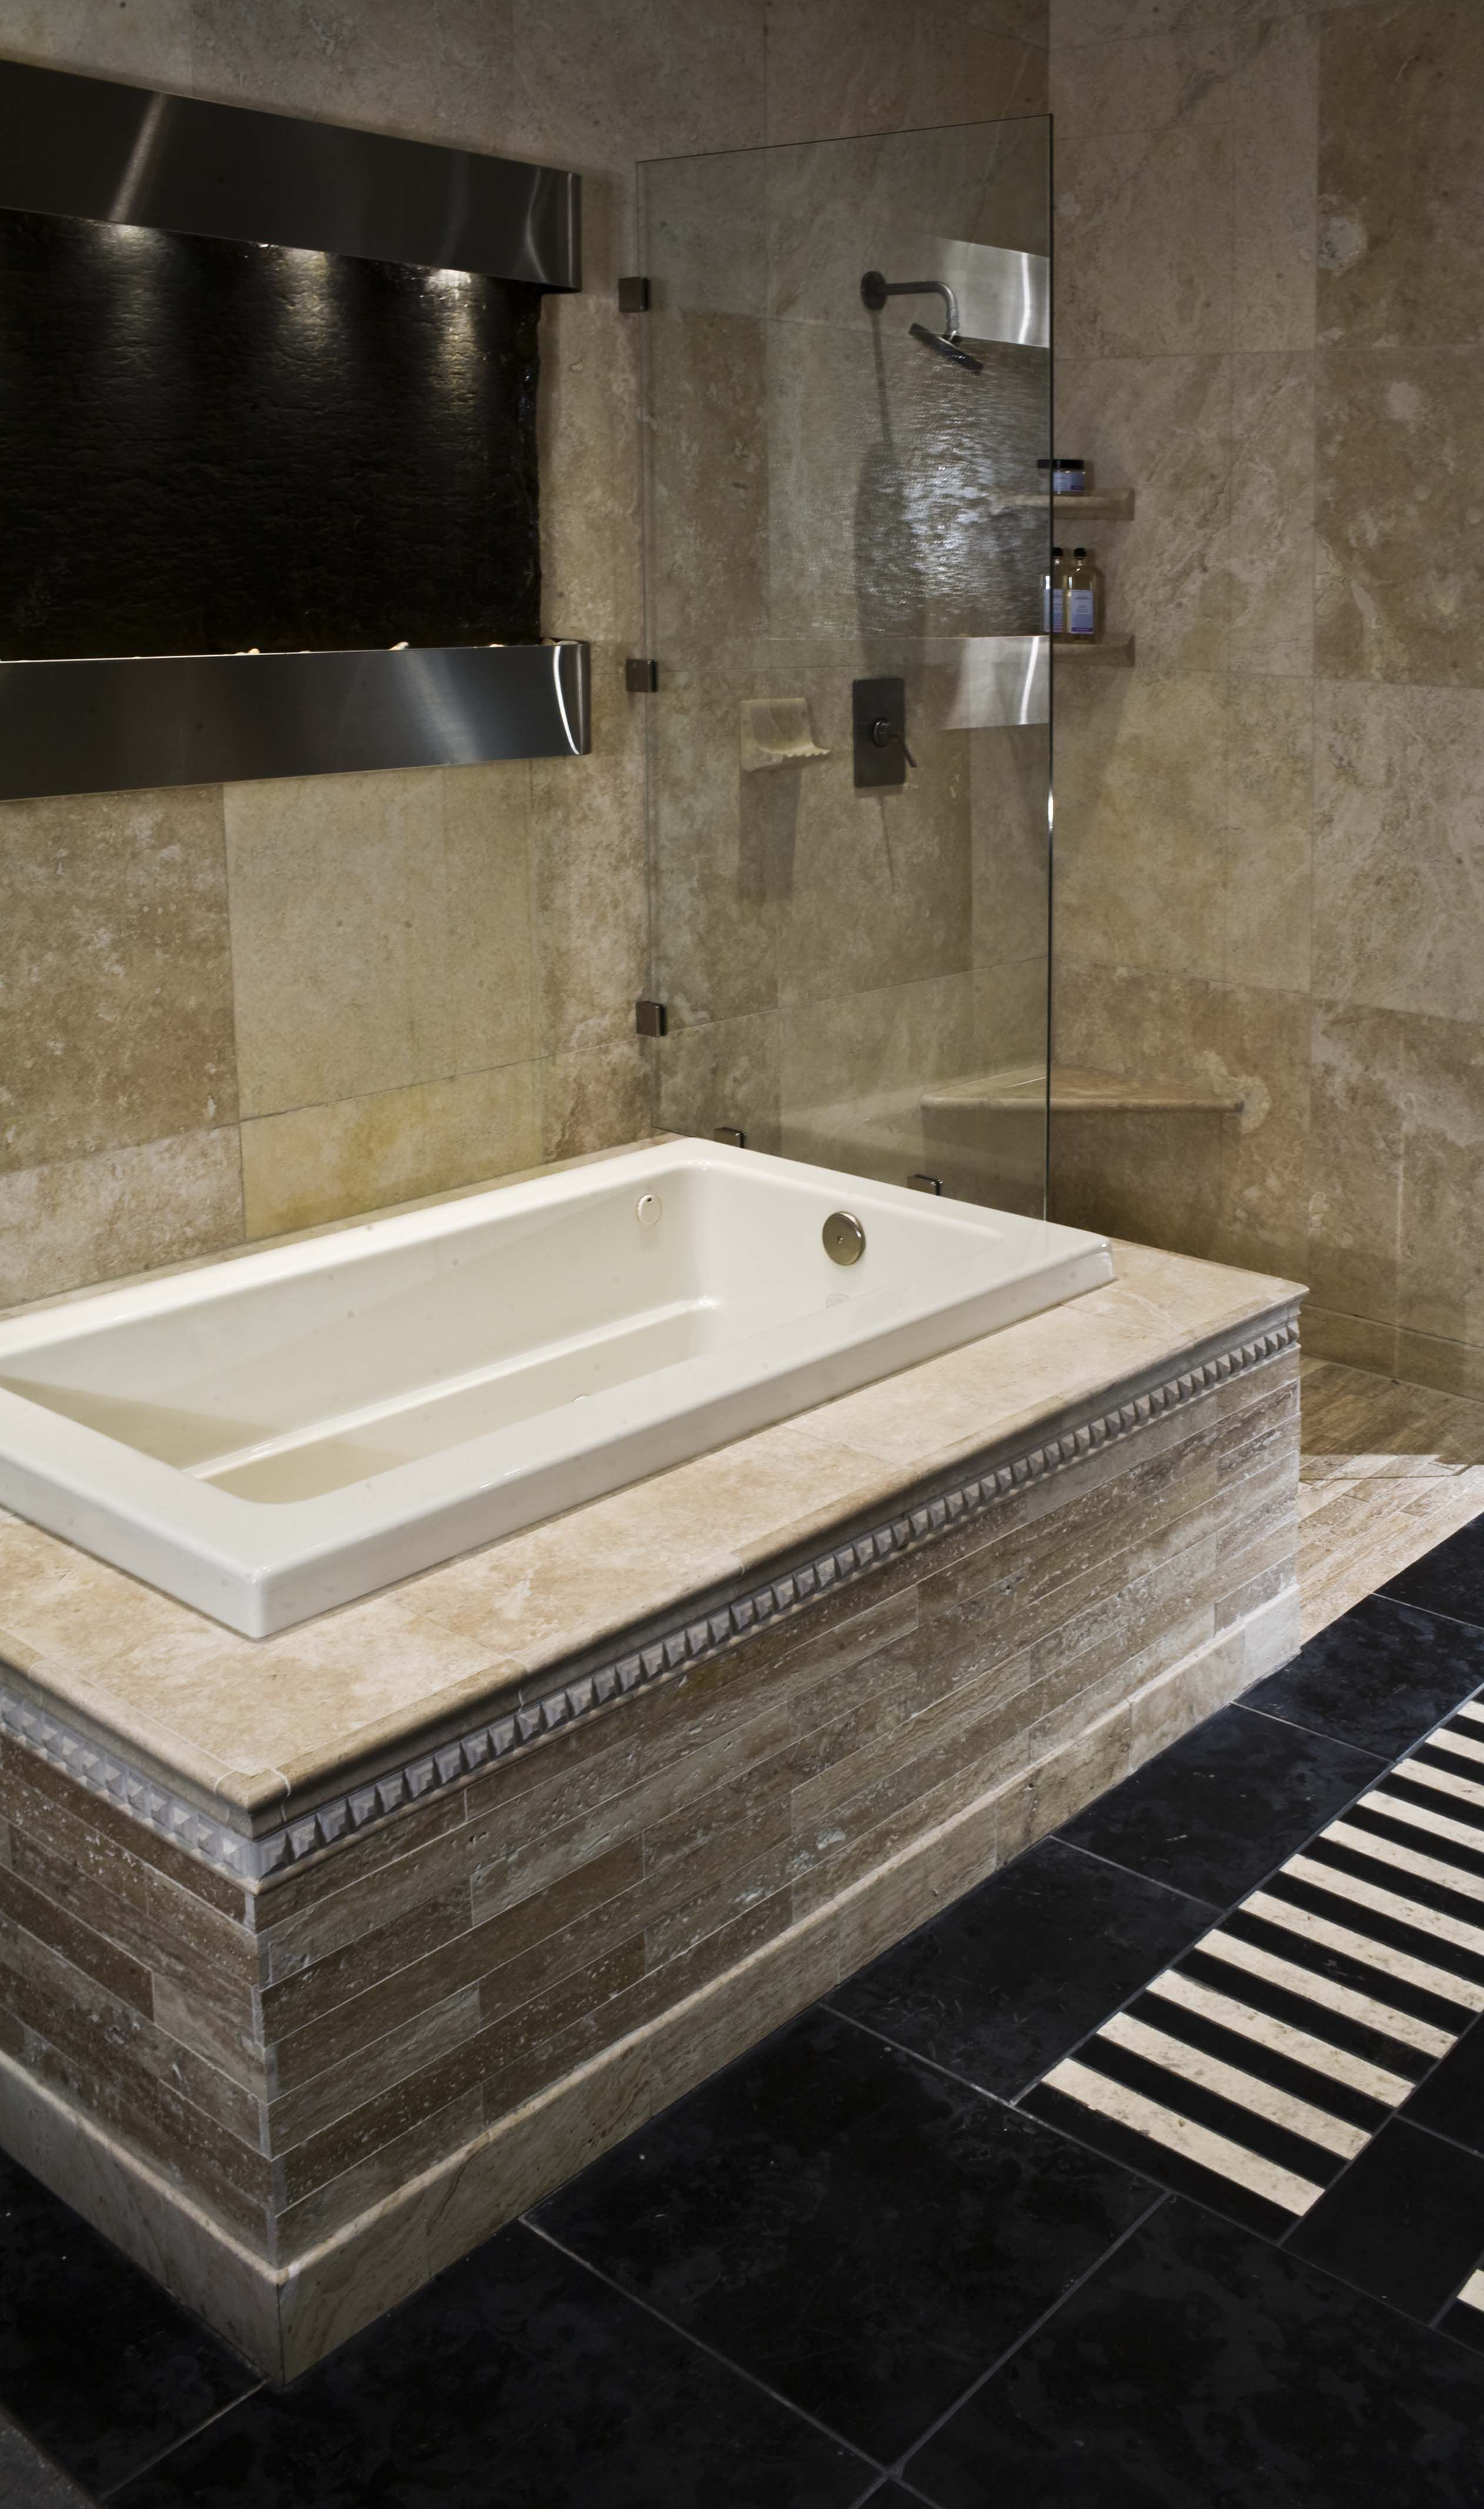 Bathroom Bathtub Latest Modern Contemporary Design And: Travertine Bath Paired With Charcoal Floor Tile And A